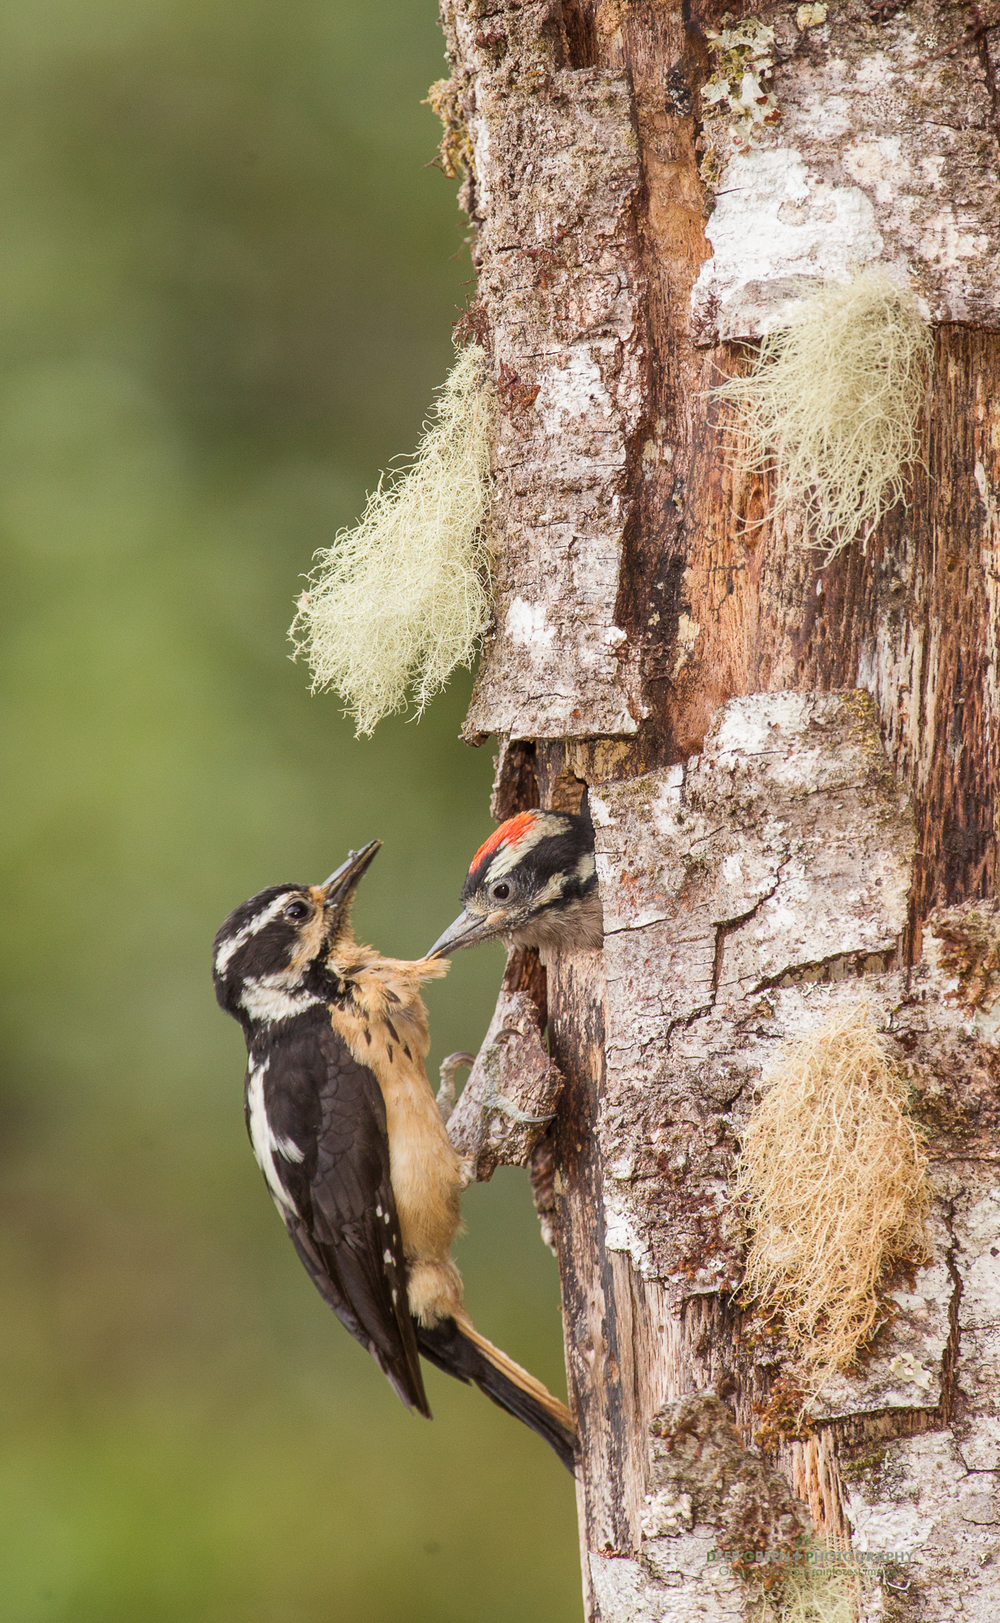 hairy woodpecker at nest with chick